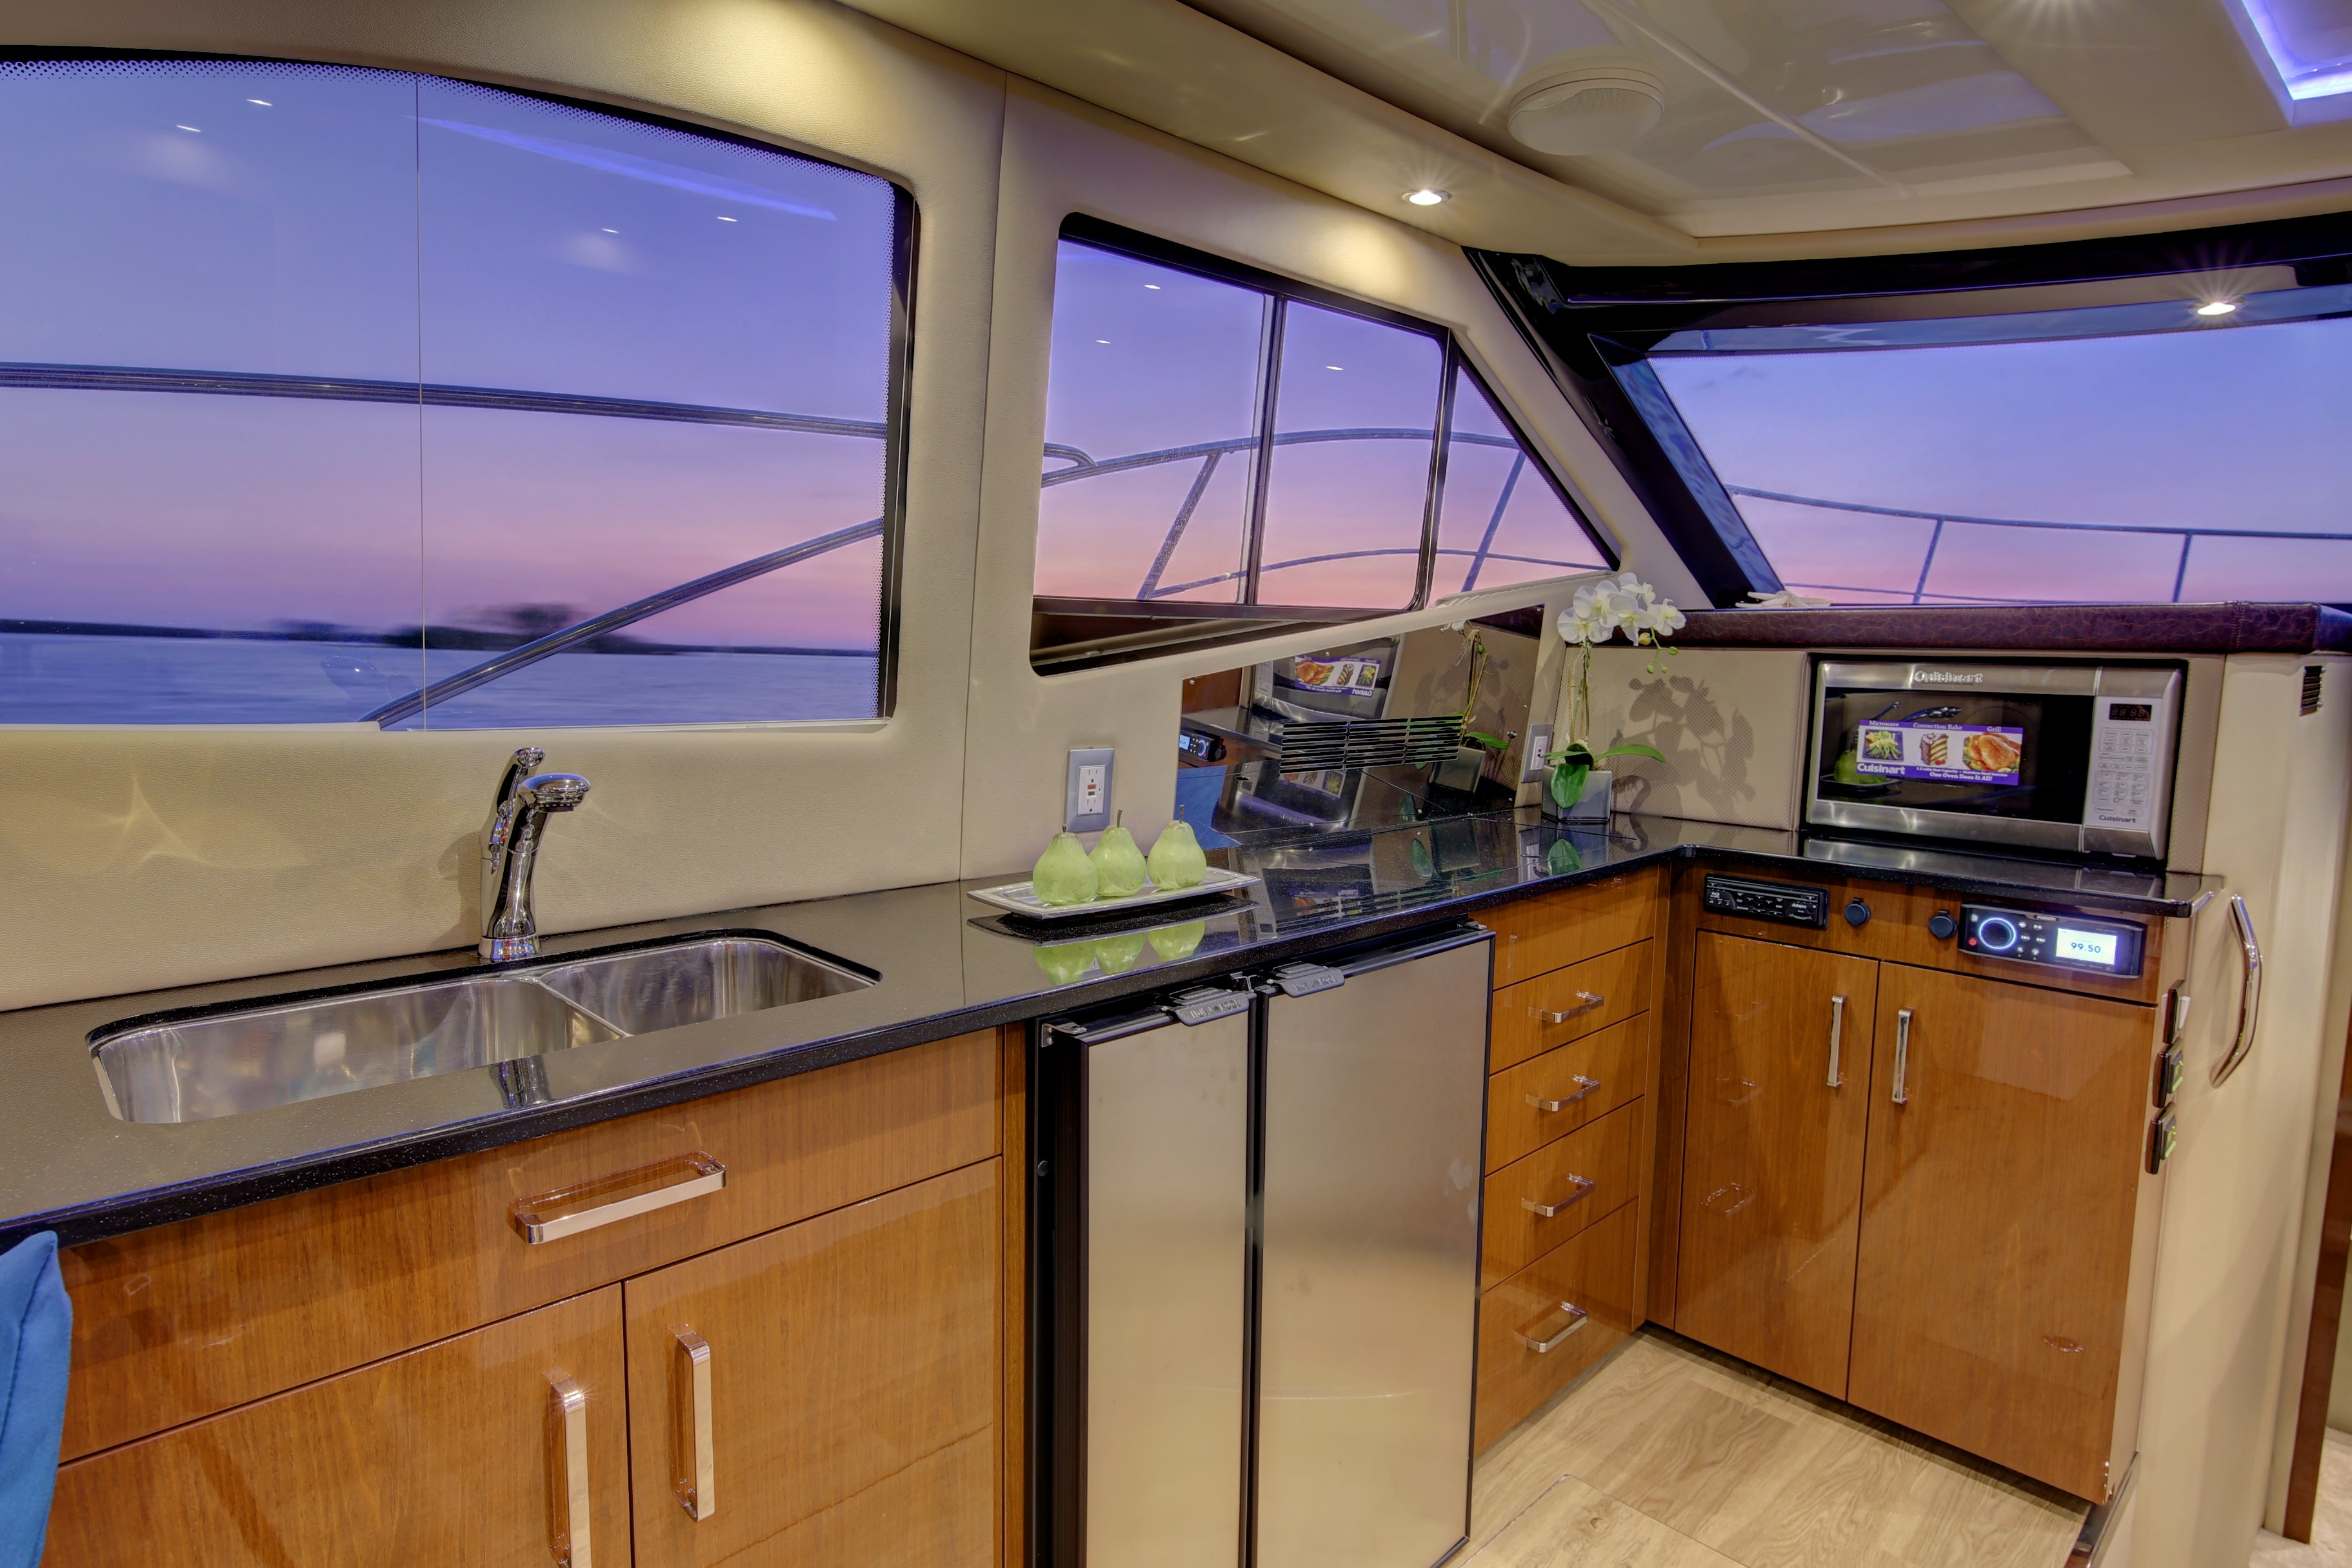 Image 0980: Galley